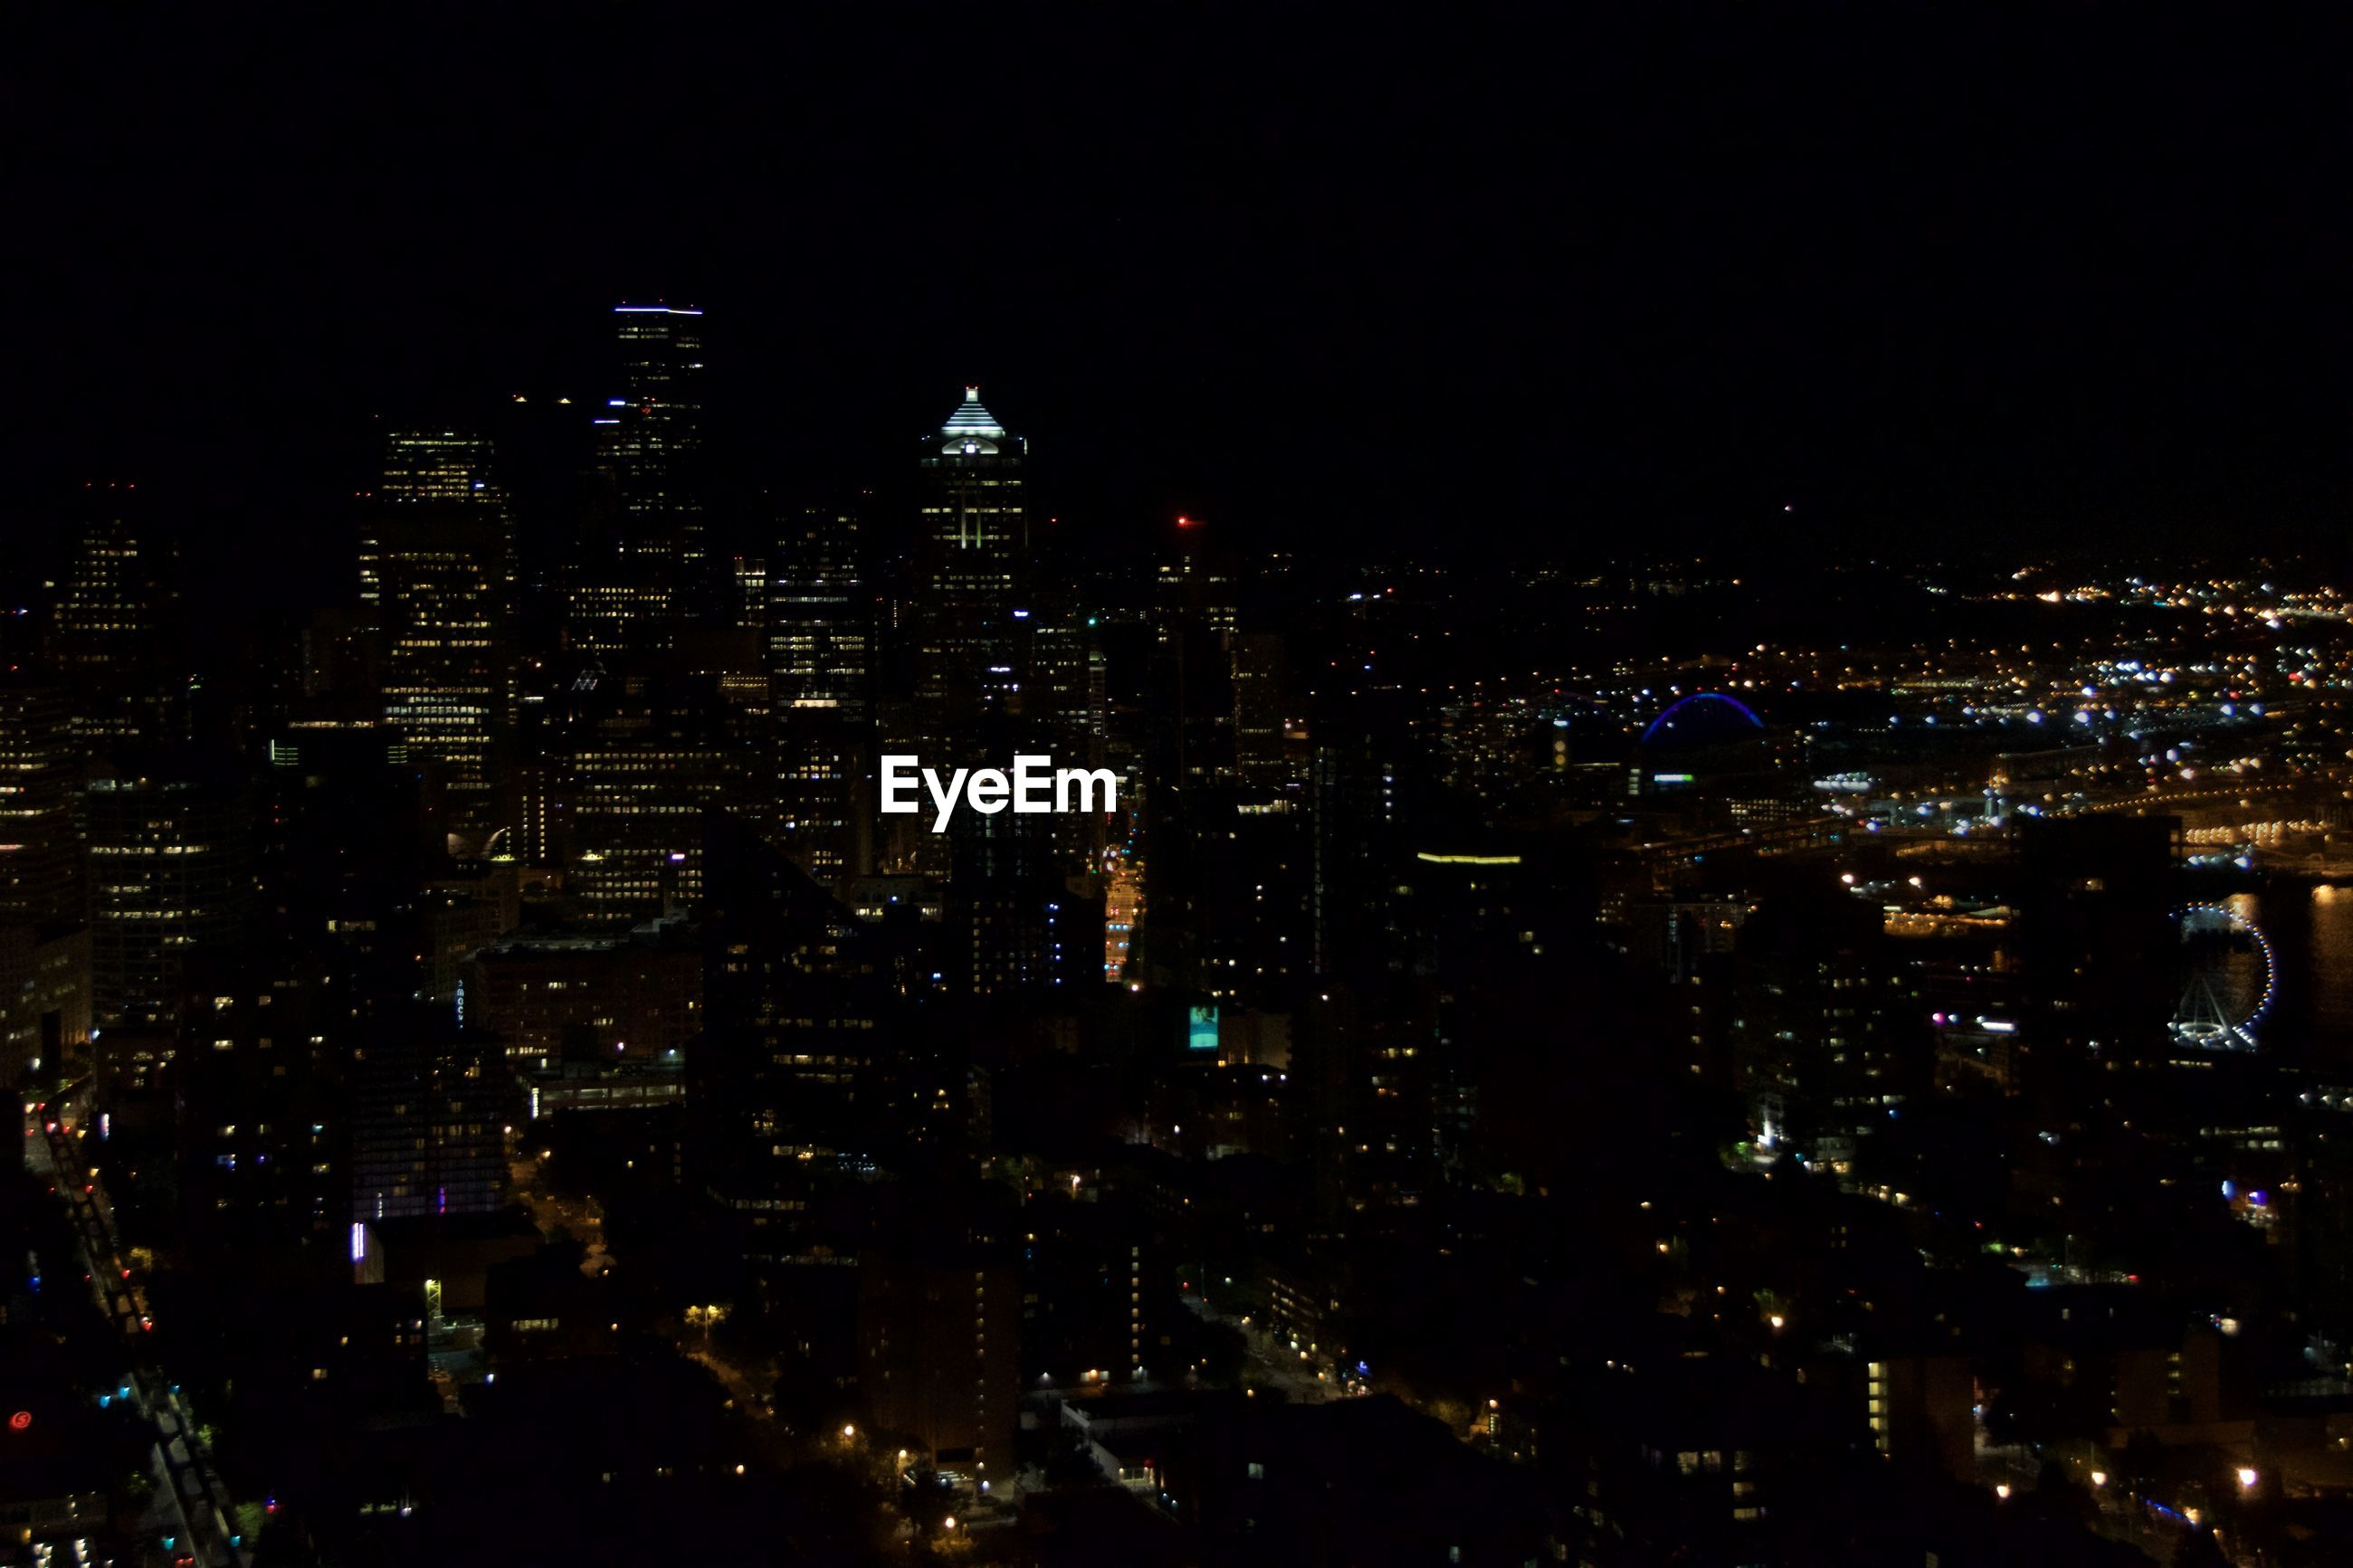 HIGH ANGLE VIEW OF CITY AT NIGHT